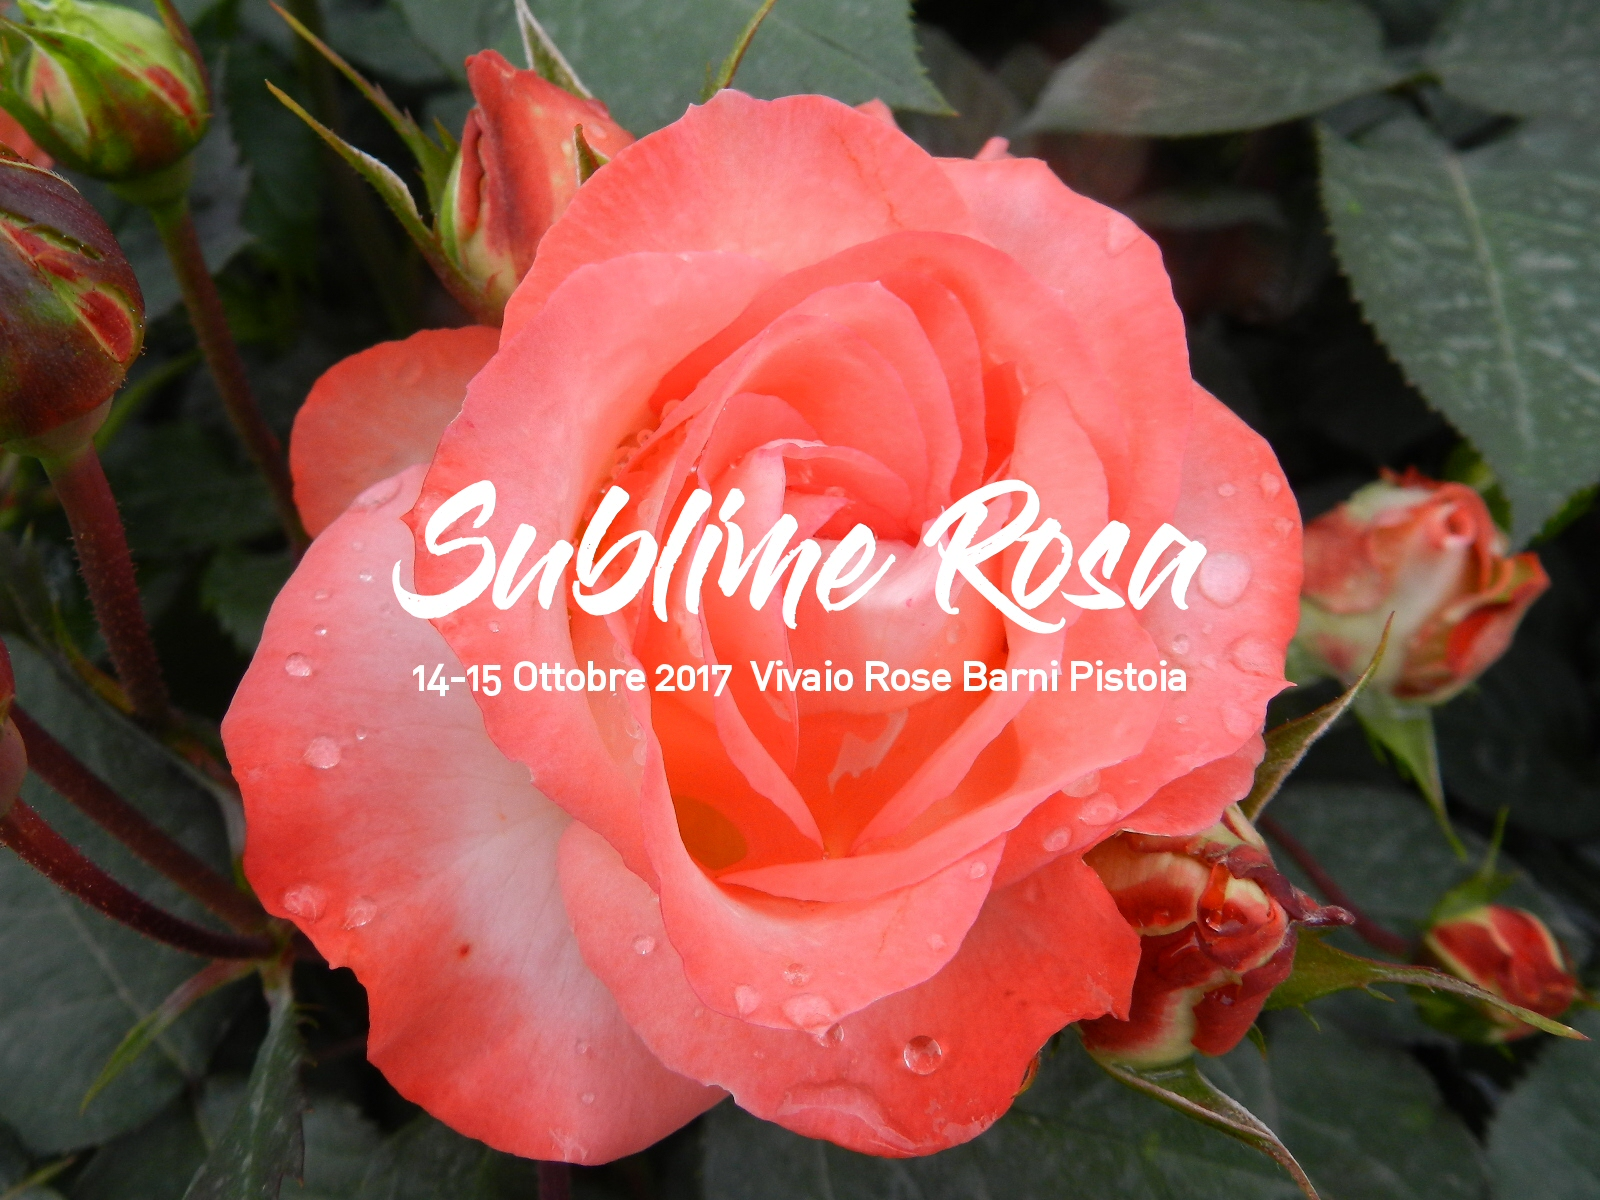 sublime-rosa-autunno-2017-1